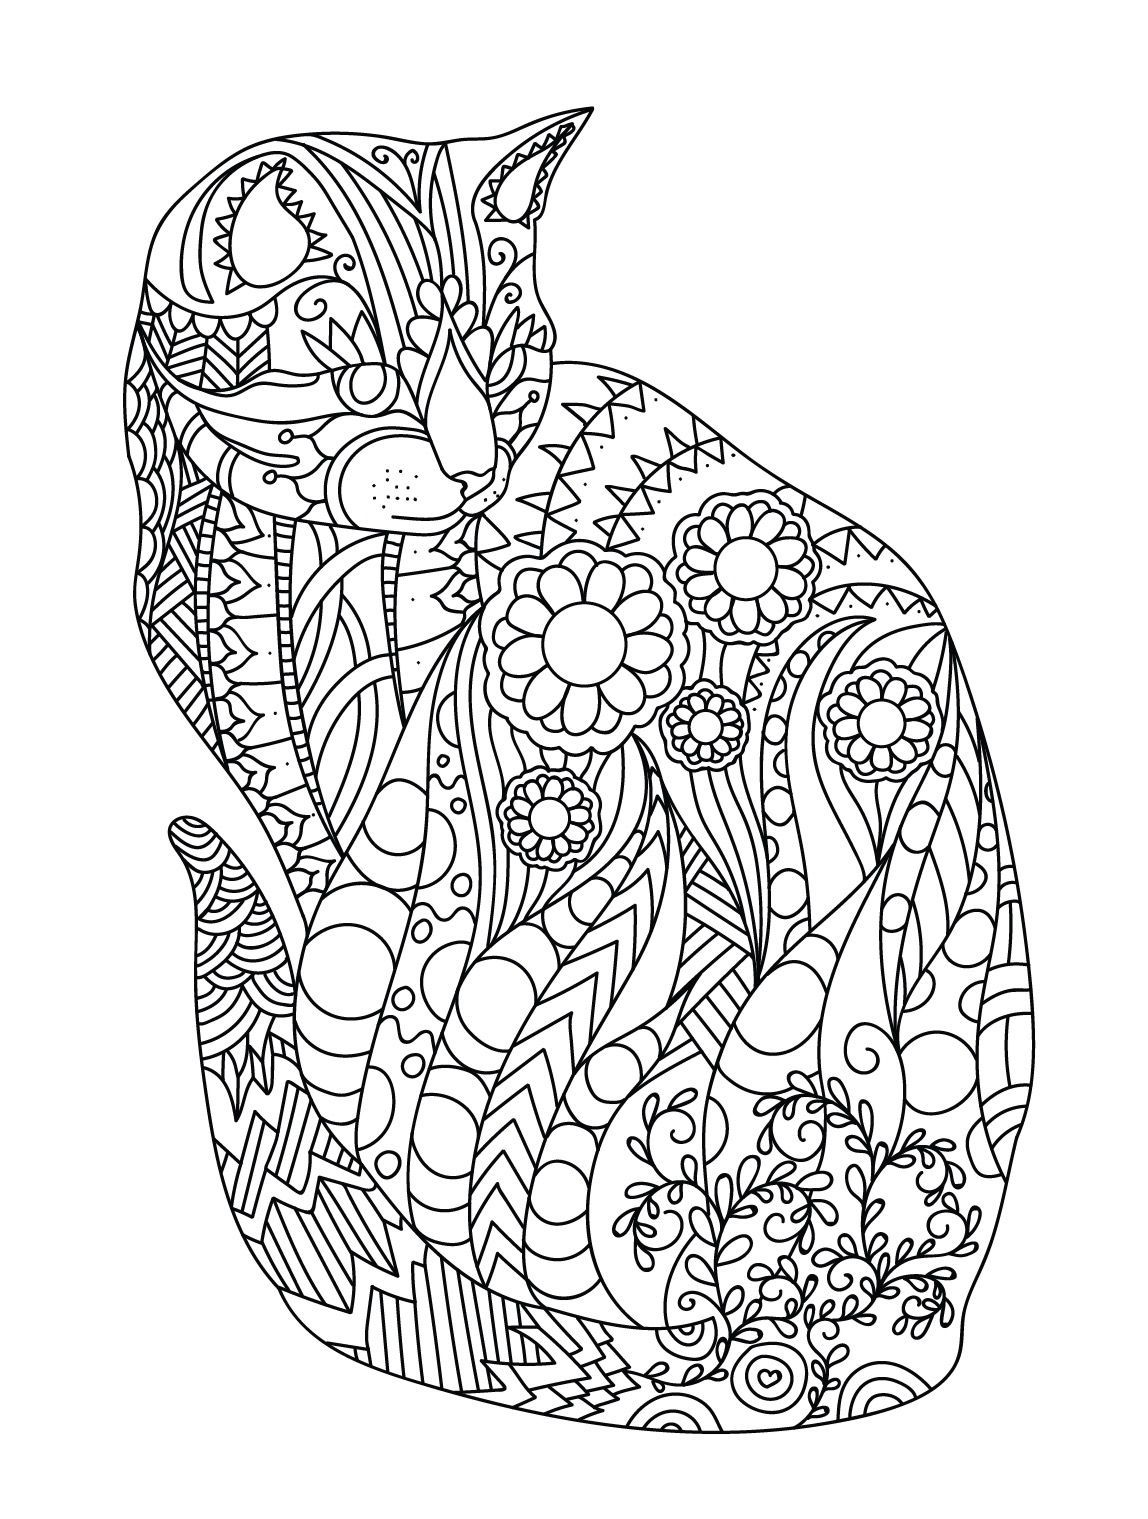 49 Zentangle Animals Inspiration To Get Started Tangling Cat Coloring Book Cat Coloring Page Emoji Coloring Pages